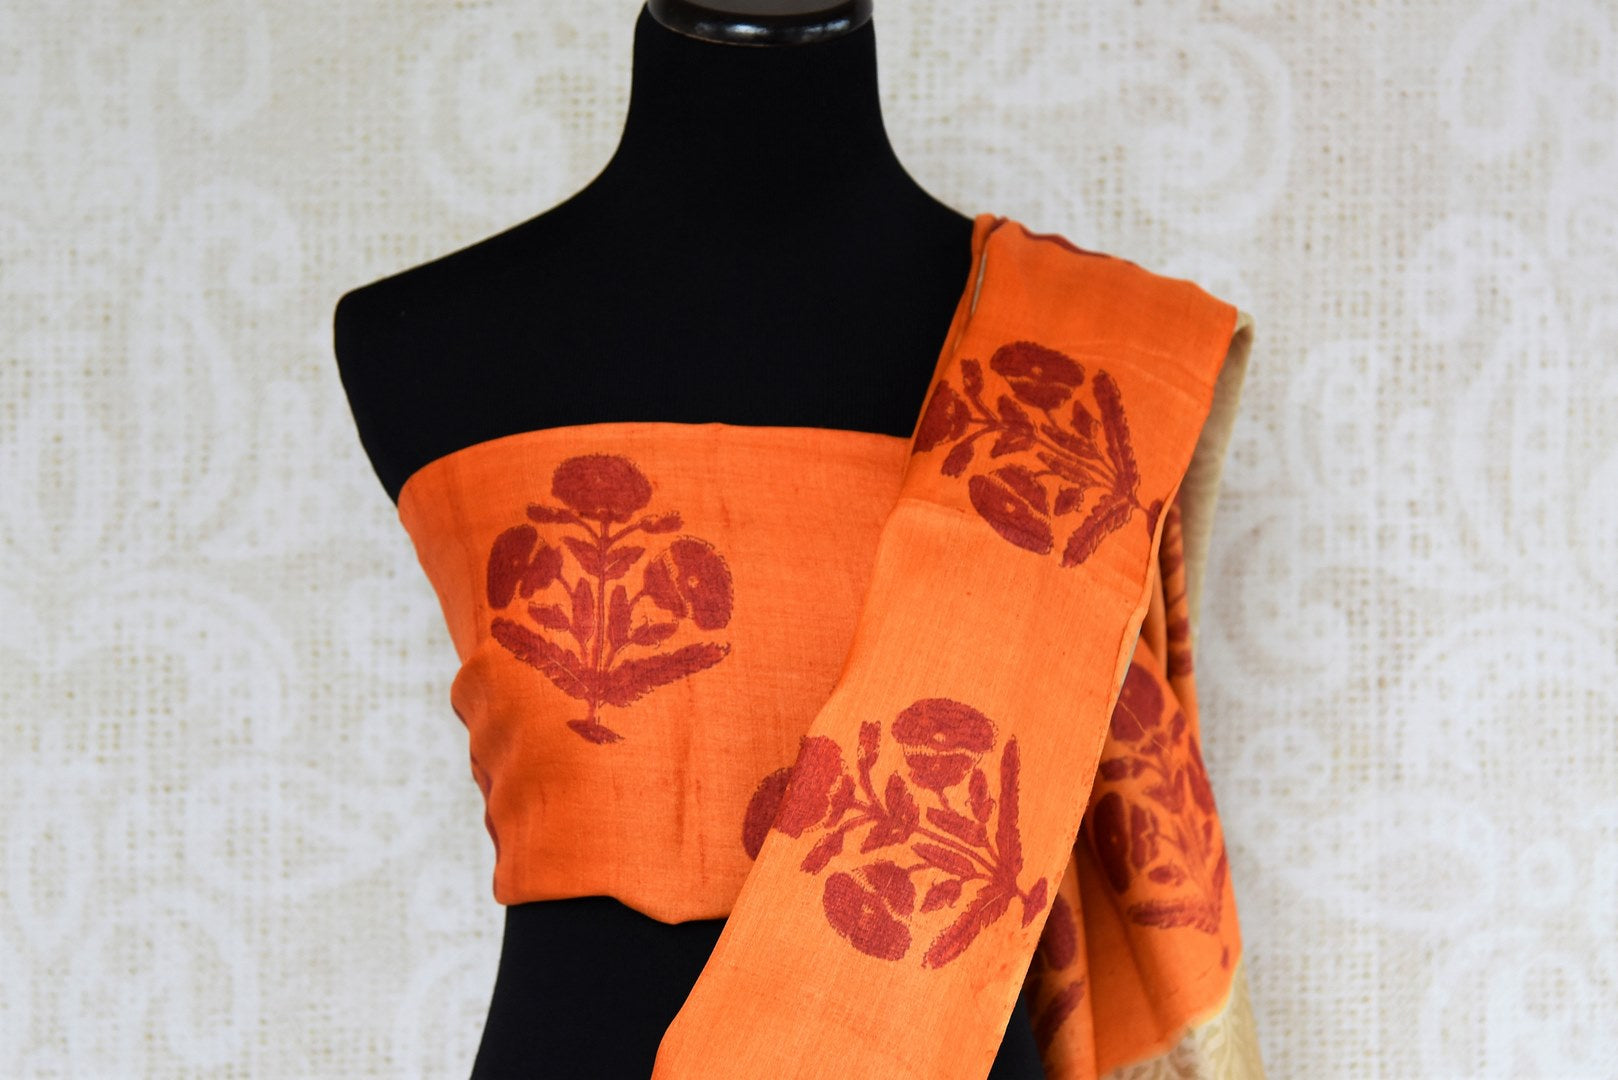 Buy elegant beige printed tussar silk sari online in USA with orange printed border. The saree is an evergreen piece for a regular saree style. If you are looking for Indian handloom sarees in USA, then Pure Elegance is the place for you. Shop online or visit our exclusive fashion store in USA.-blouse pallu